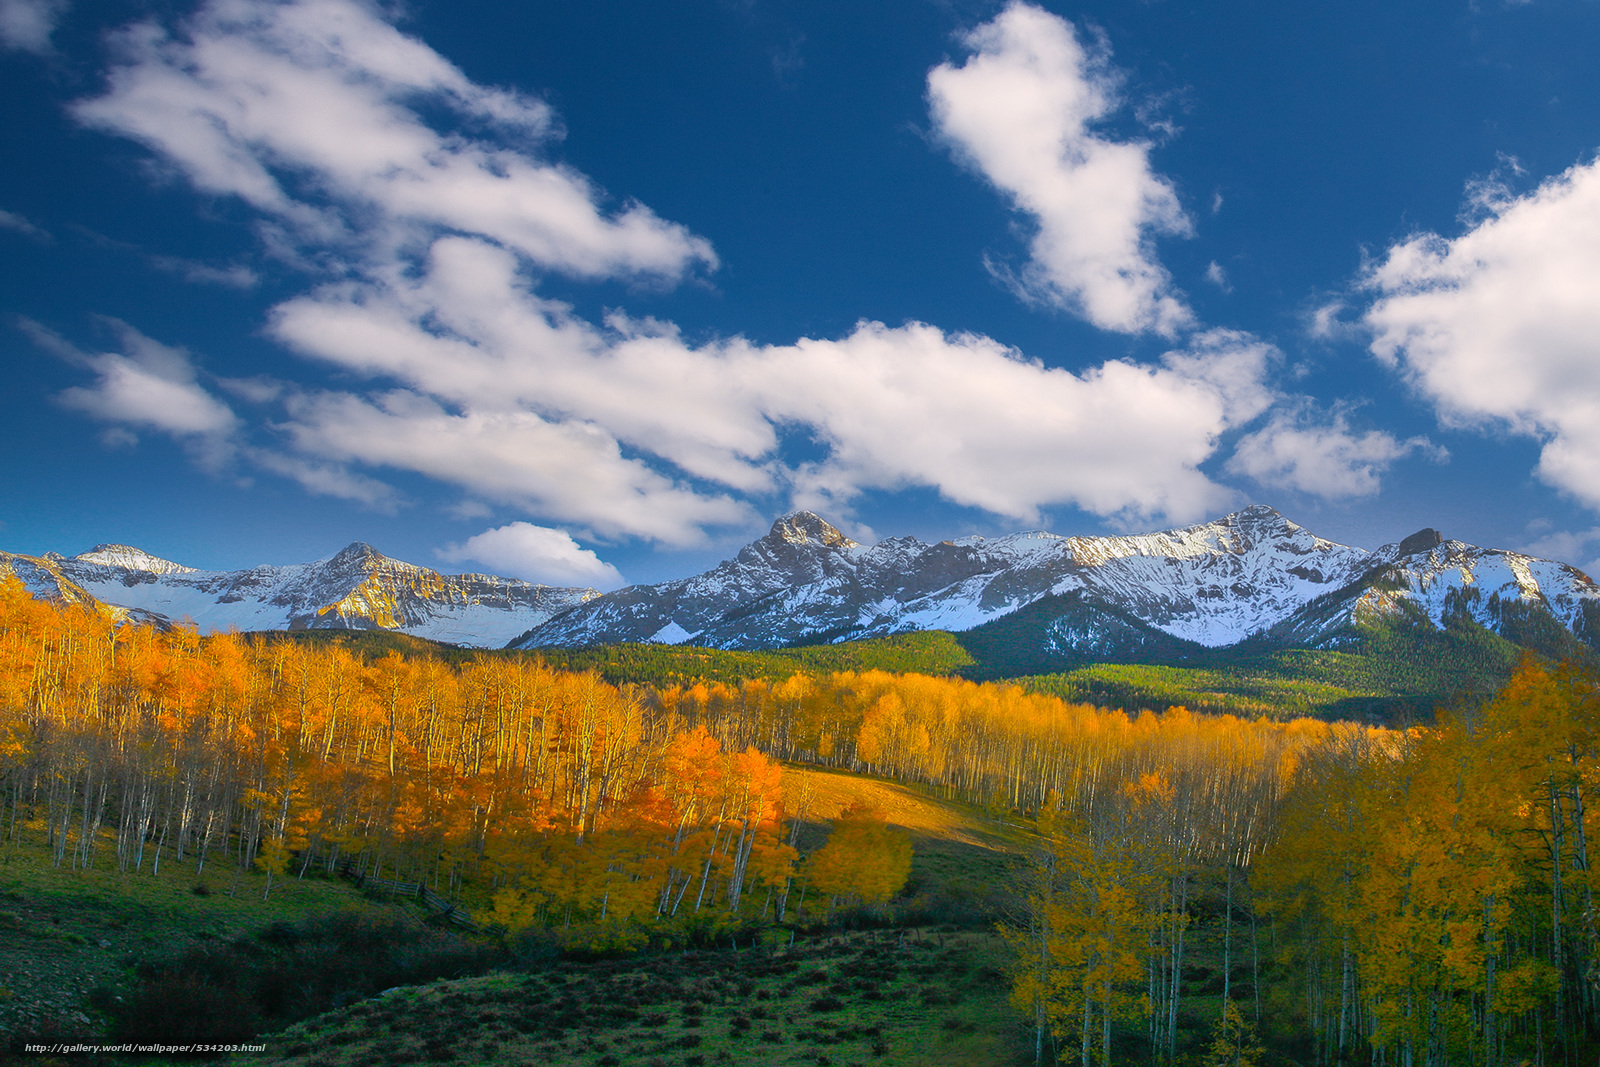 Download wallpaper color valley fall forest autumn colorado 1600x1067